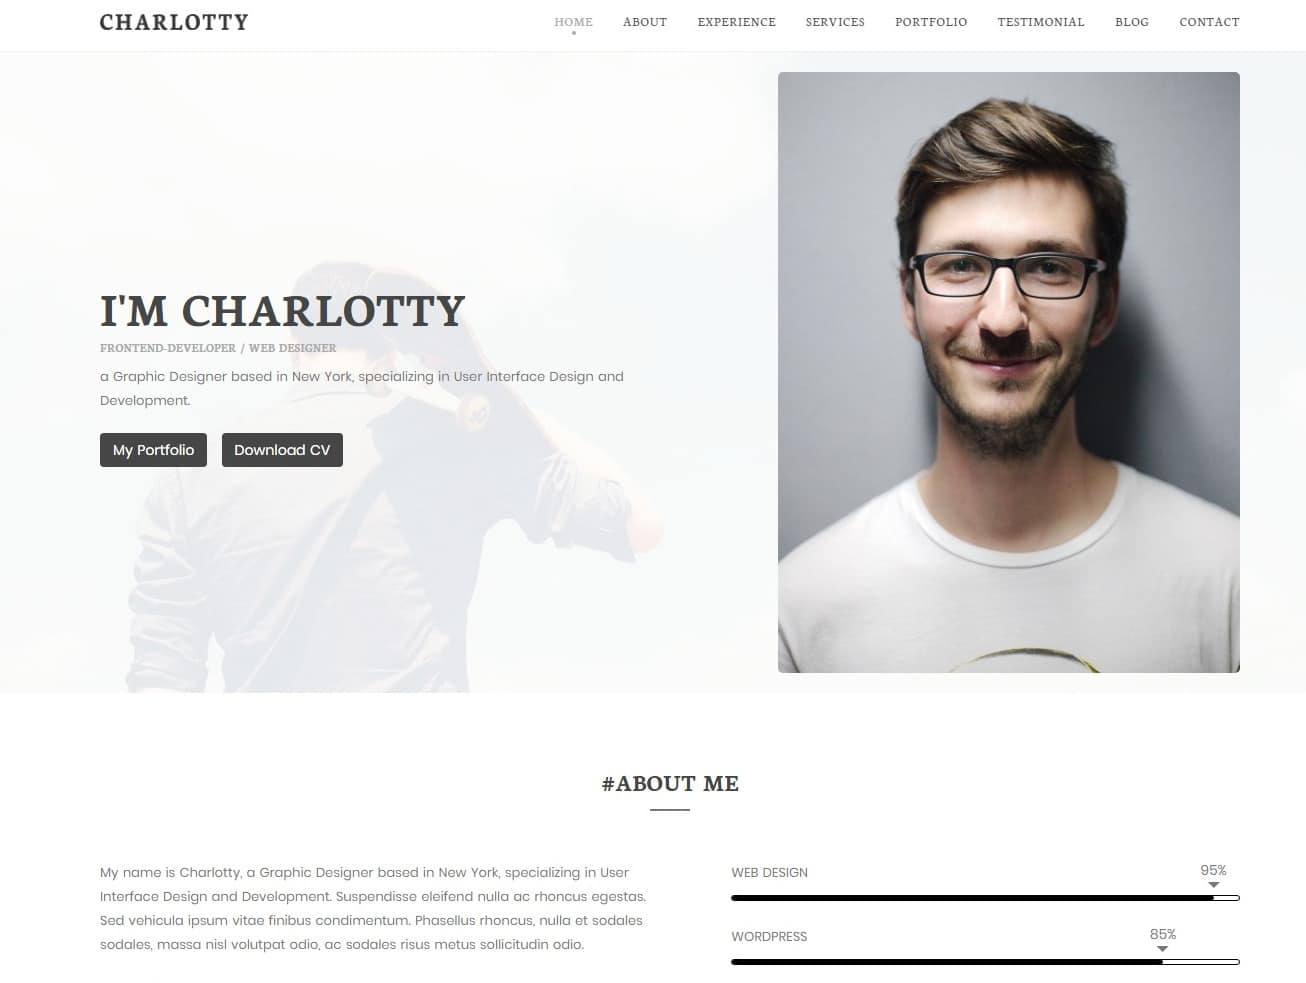 charlotty simple website template